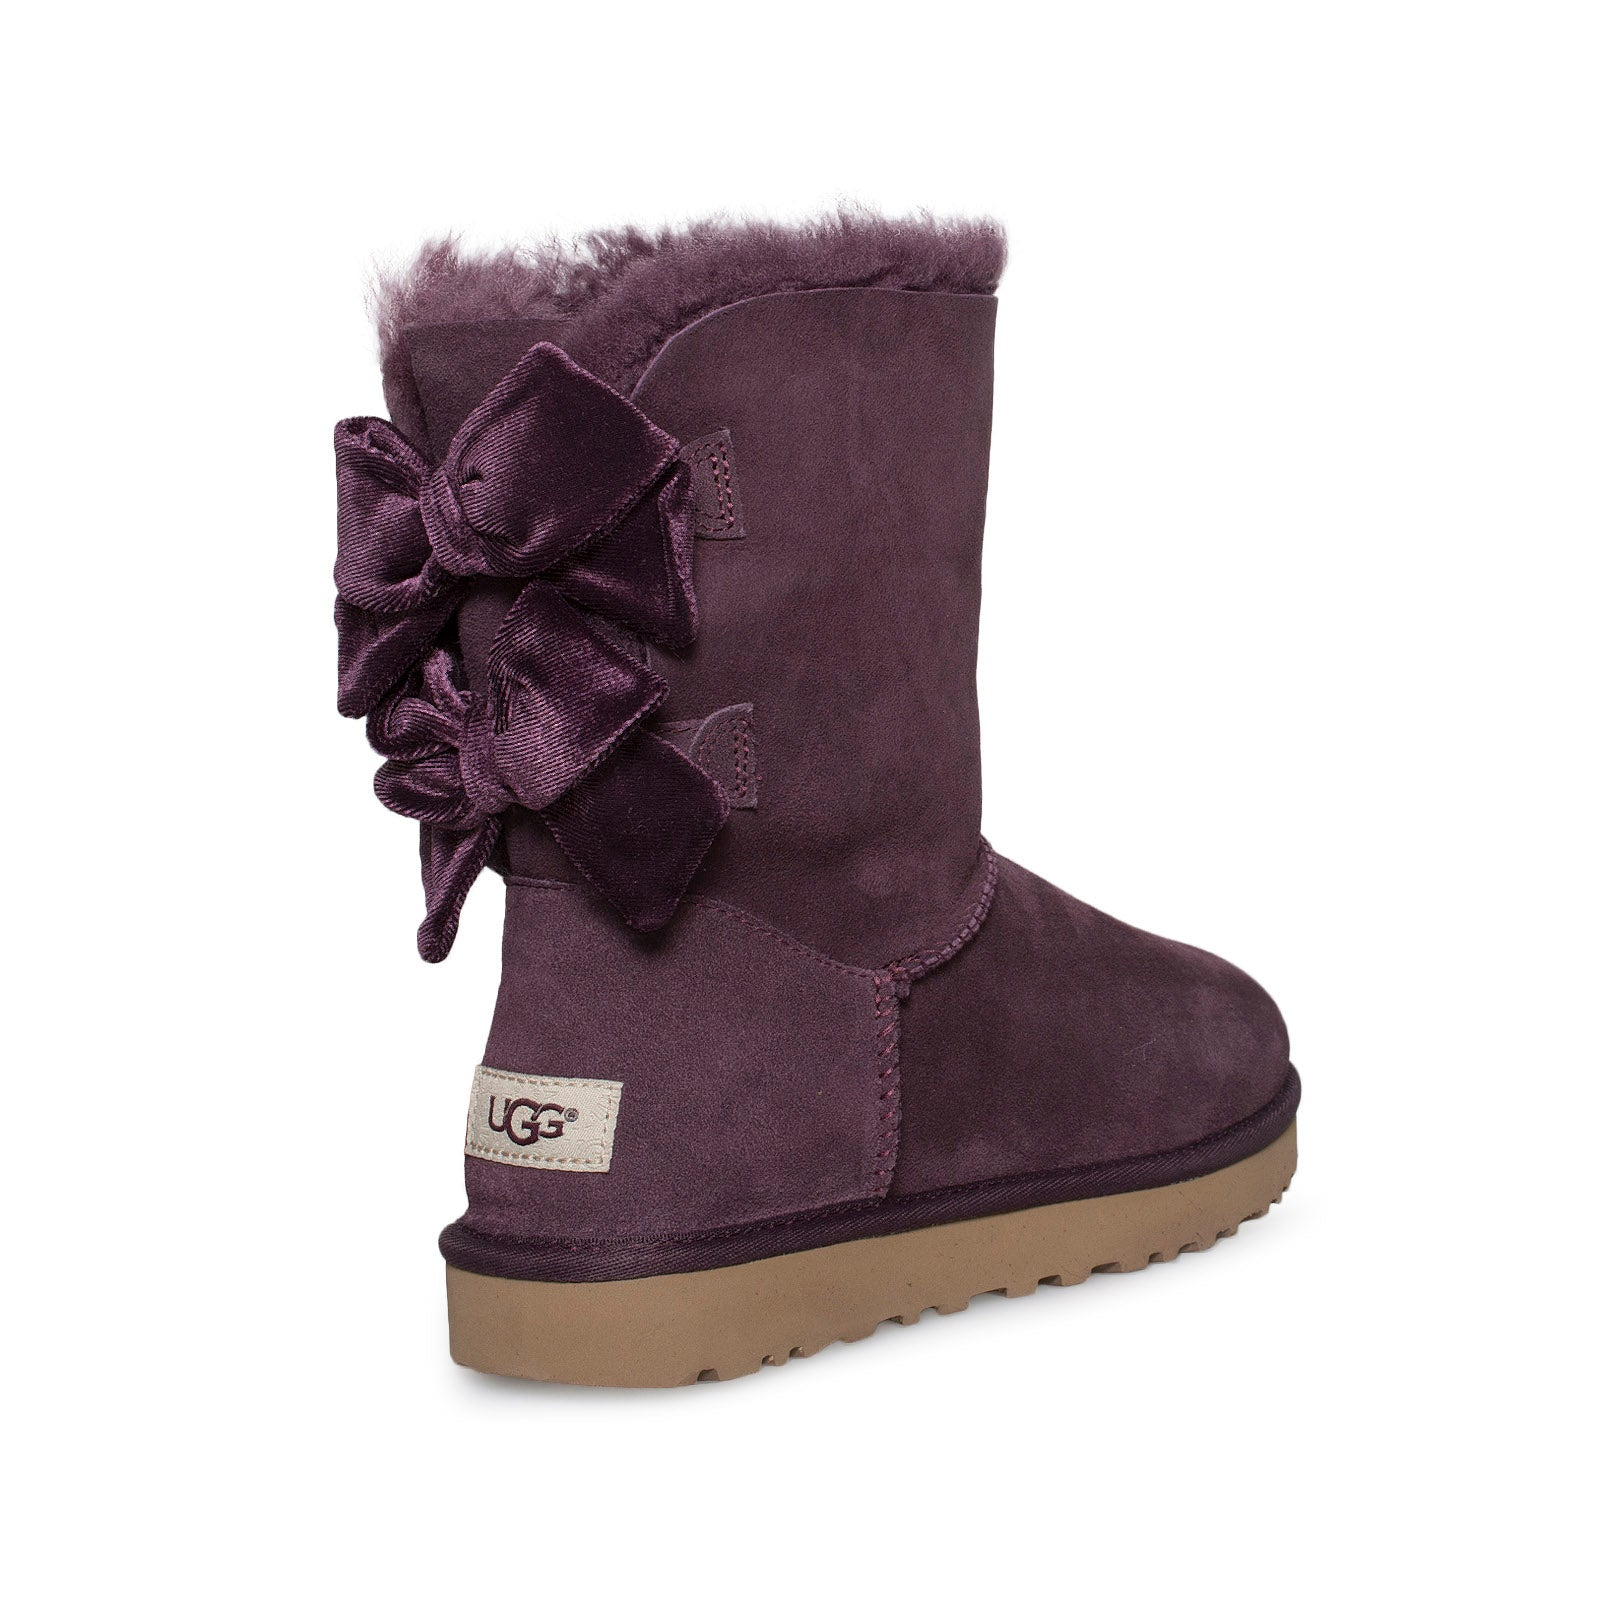 b70ccec1137 UGG Bailey bow II Velvet Ribbon Port Boots